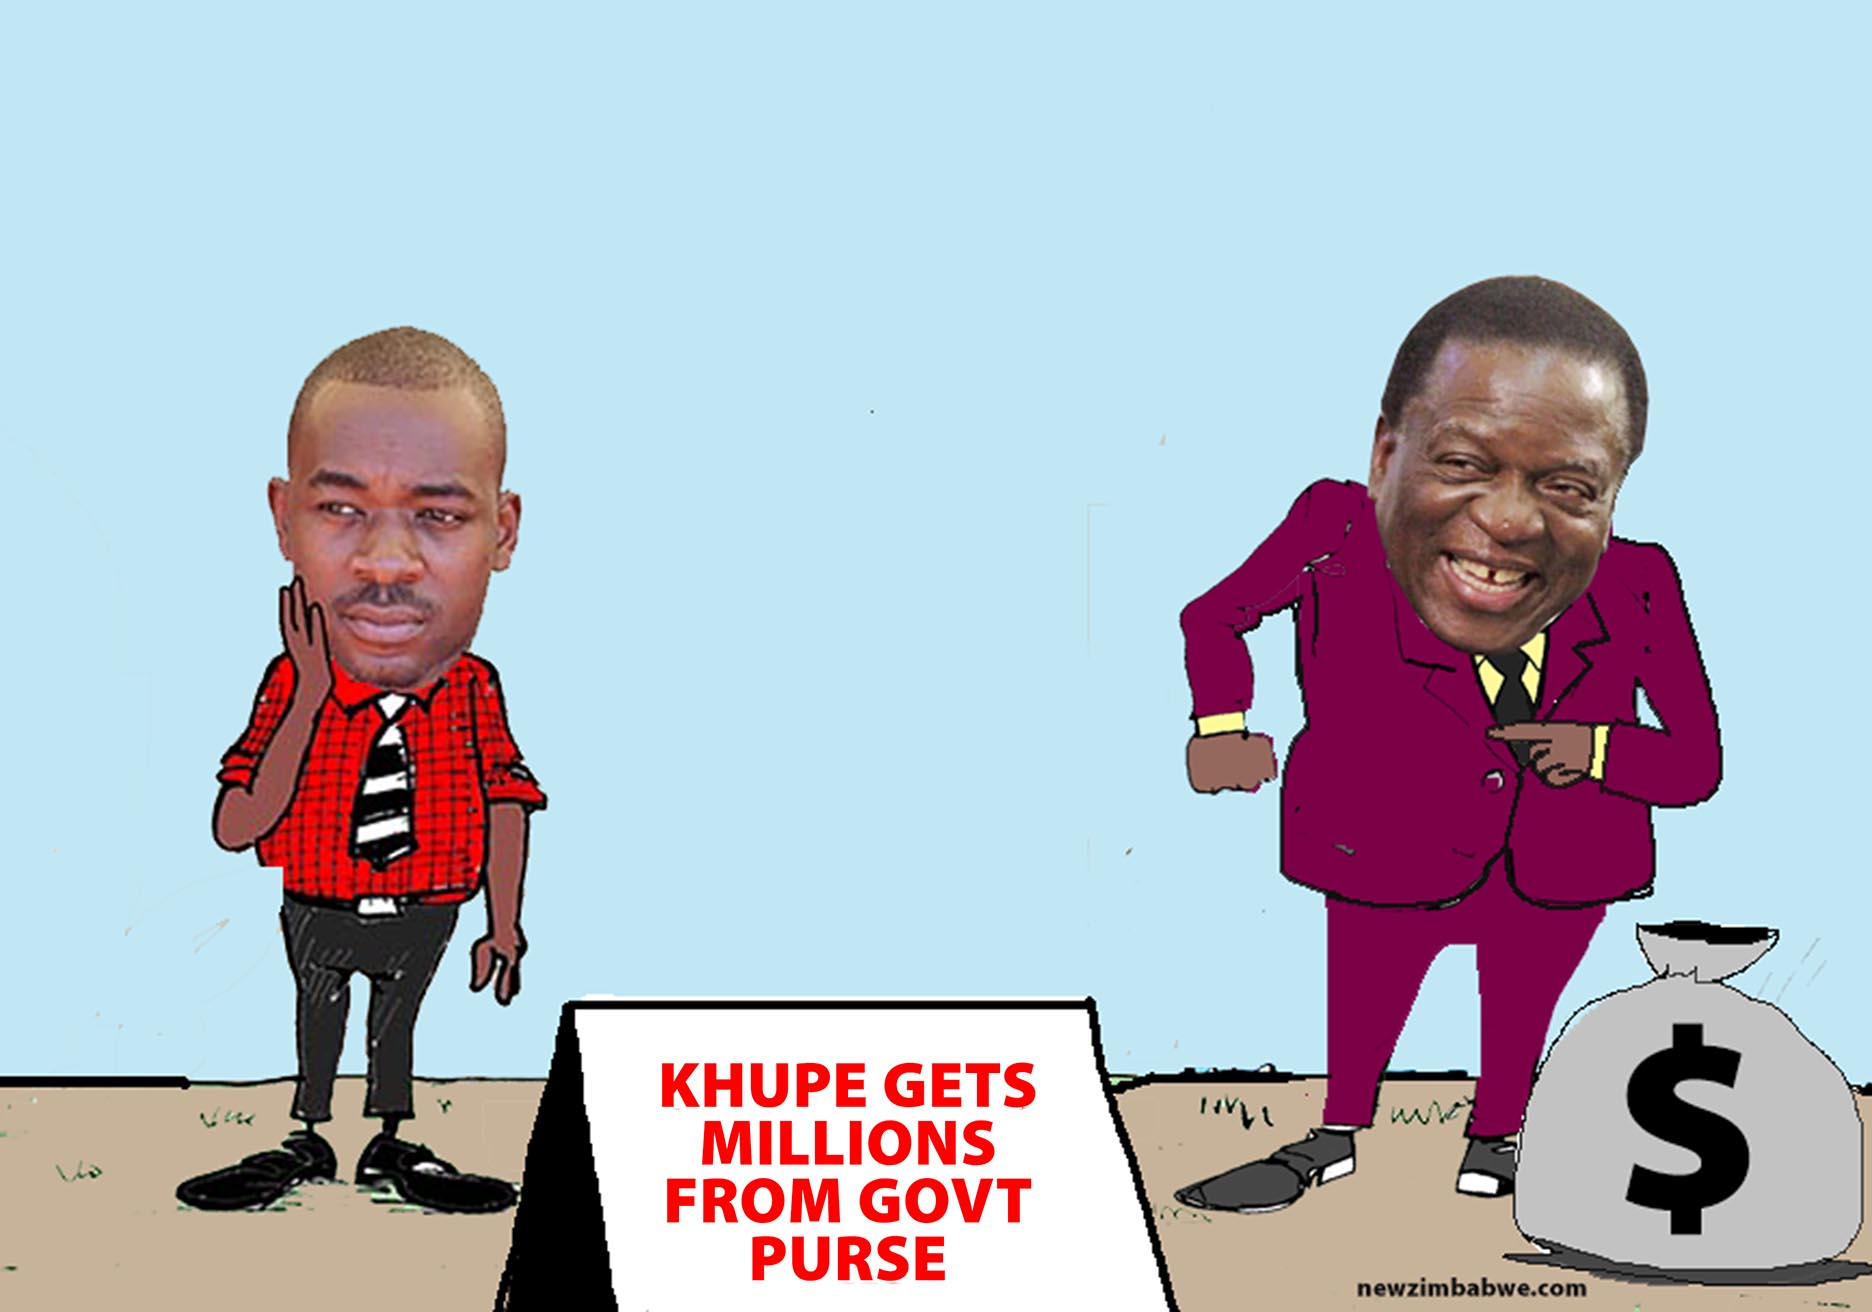 Khupe gets millions